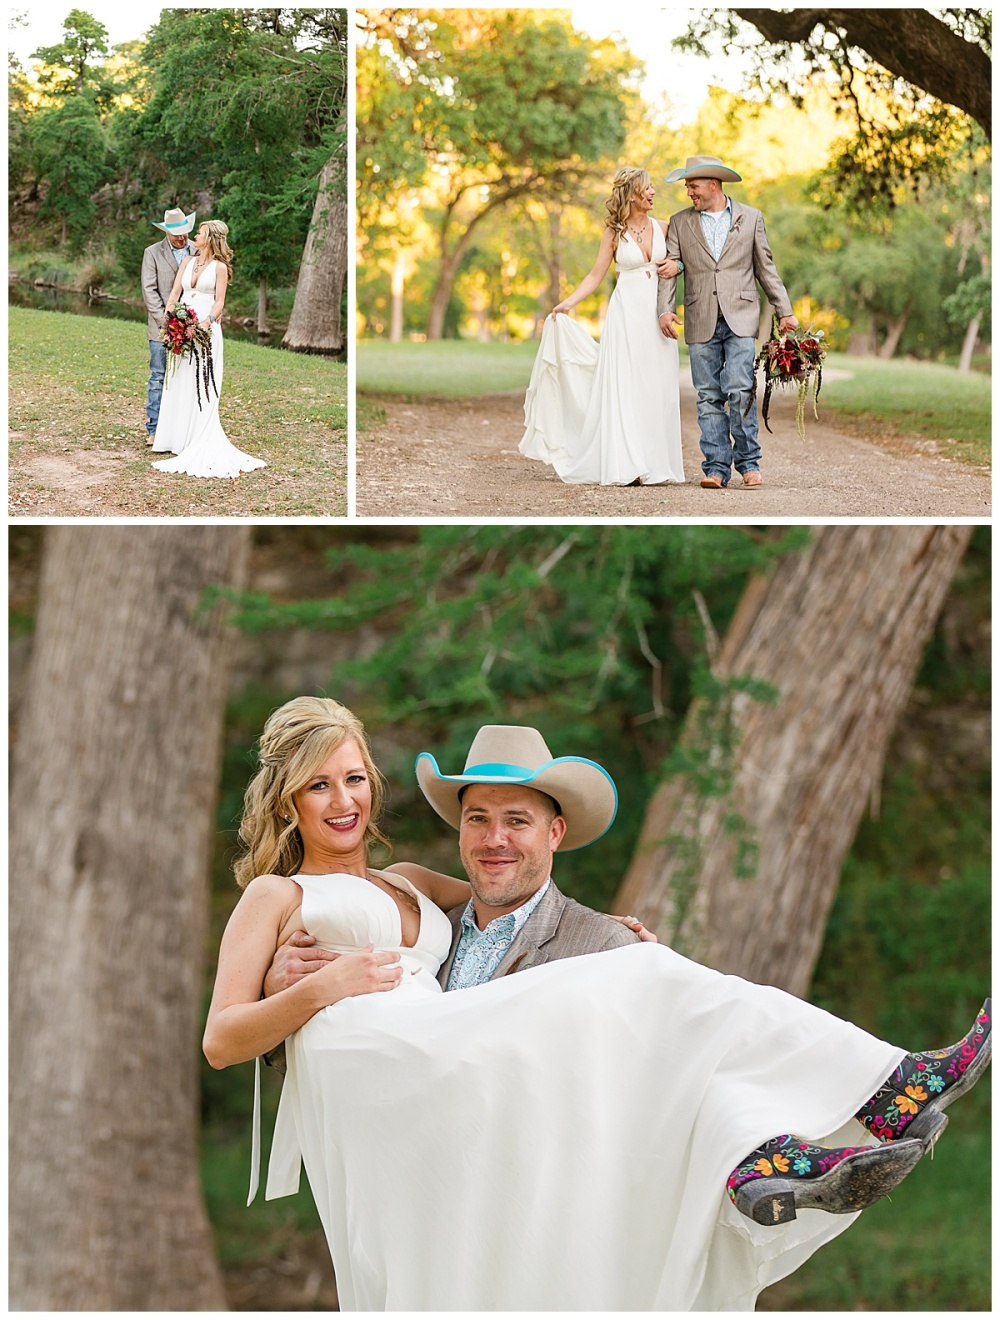 Eagle-Dancer-Ranch-Boerne-Texas-Wedding-Party-Barn-Carly-Barton-Photography_0047.jpg